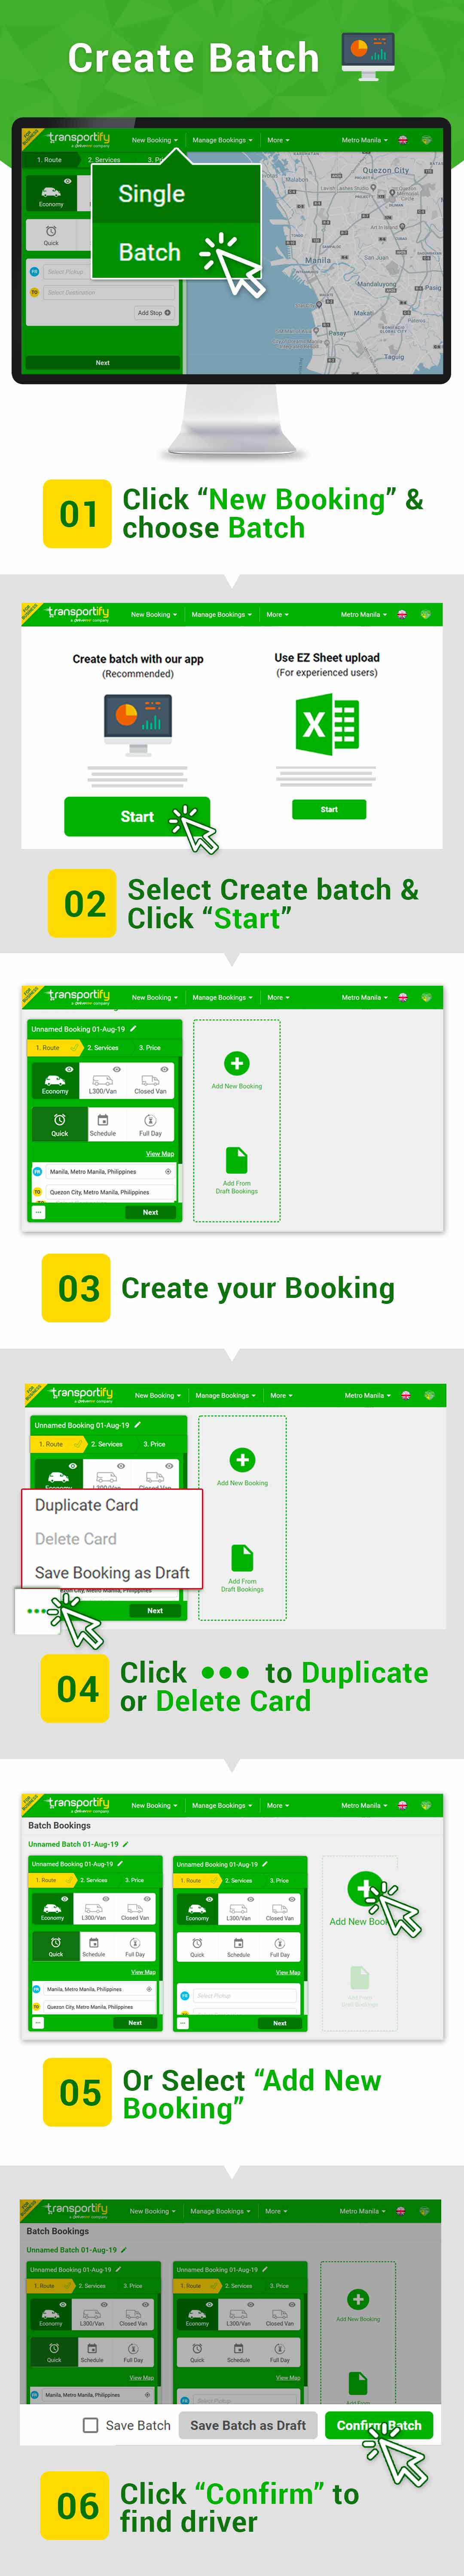 Batch Booking on the Web App